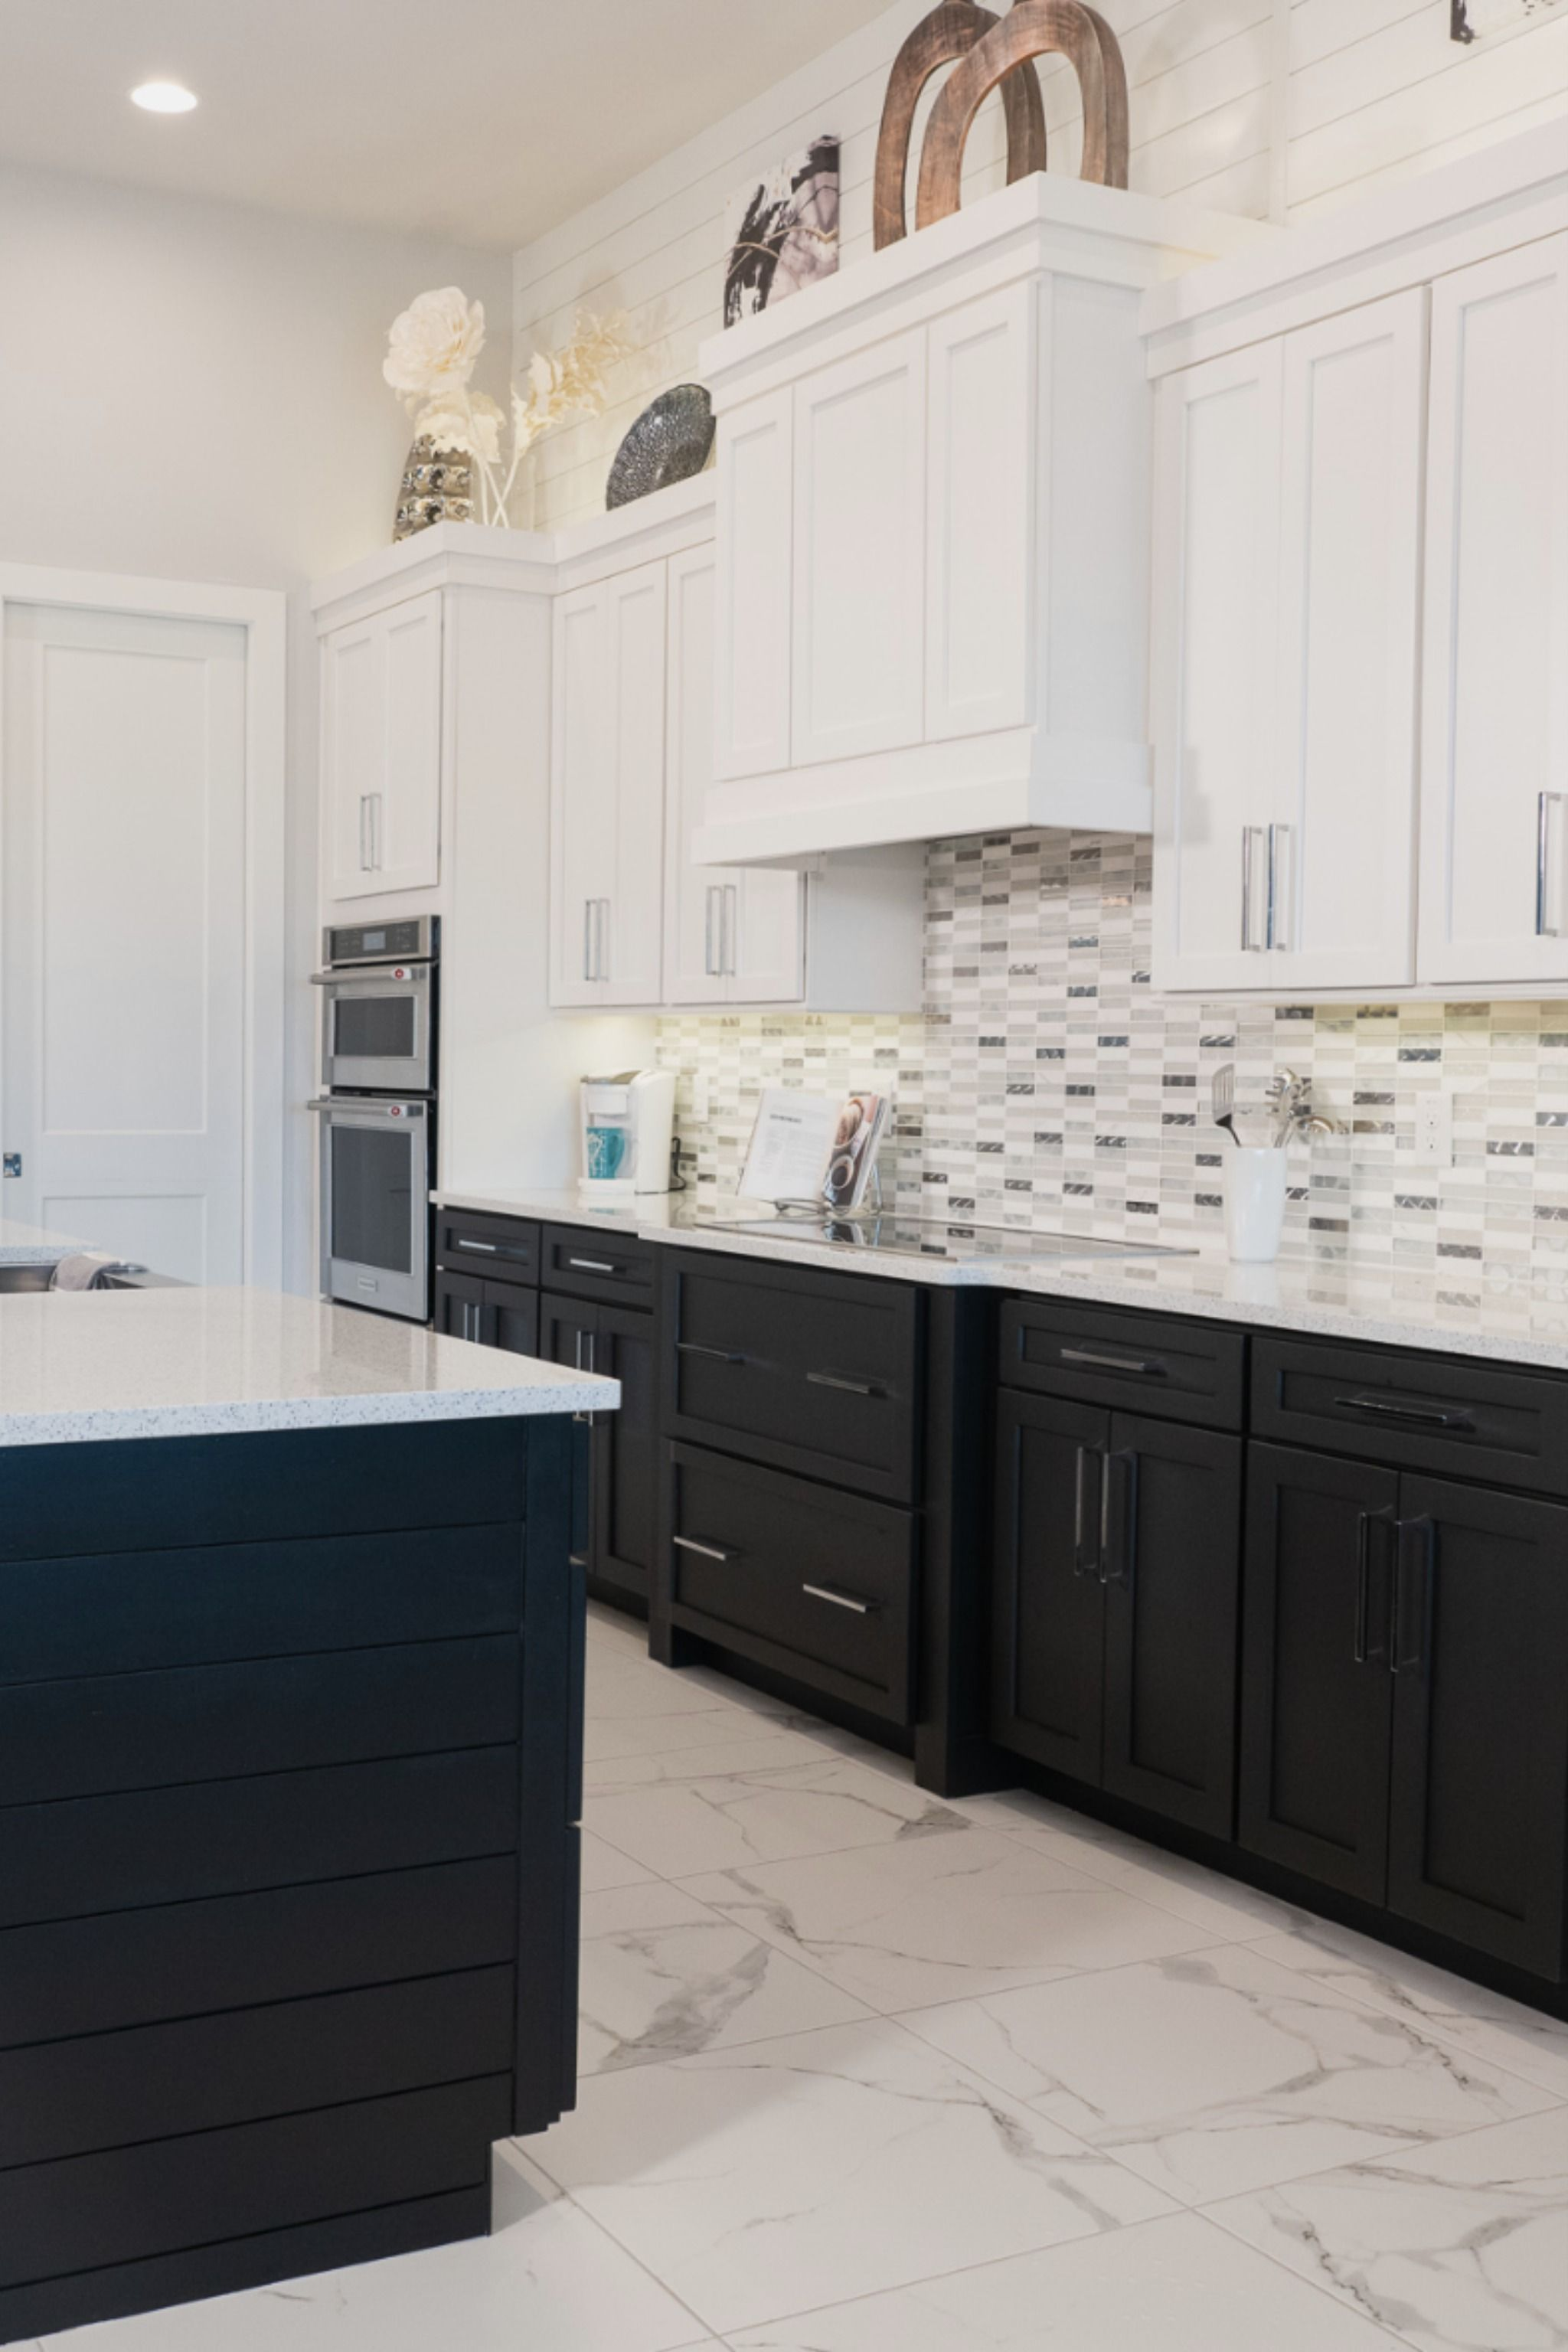 This Modern Tuxedo Kitchen Features Shiplap Both On The Island And Above The Cabinets In 2020 Modern Kitchen Trends Modern Kitchen Cabinets Kitchen Furniture Storage